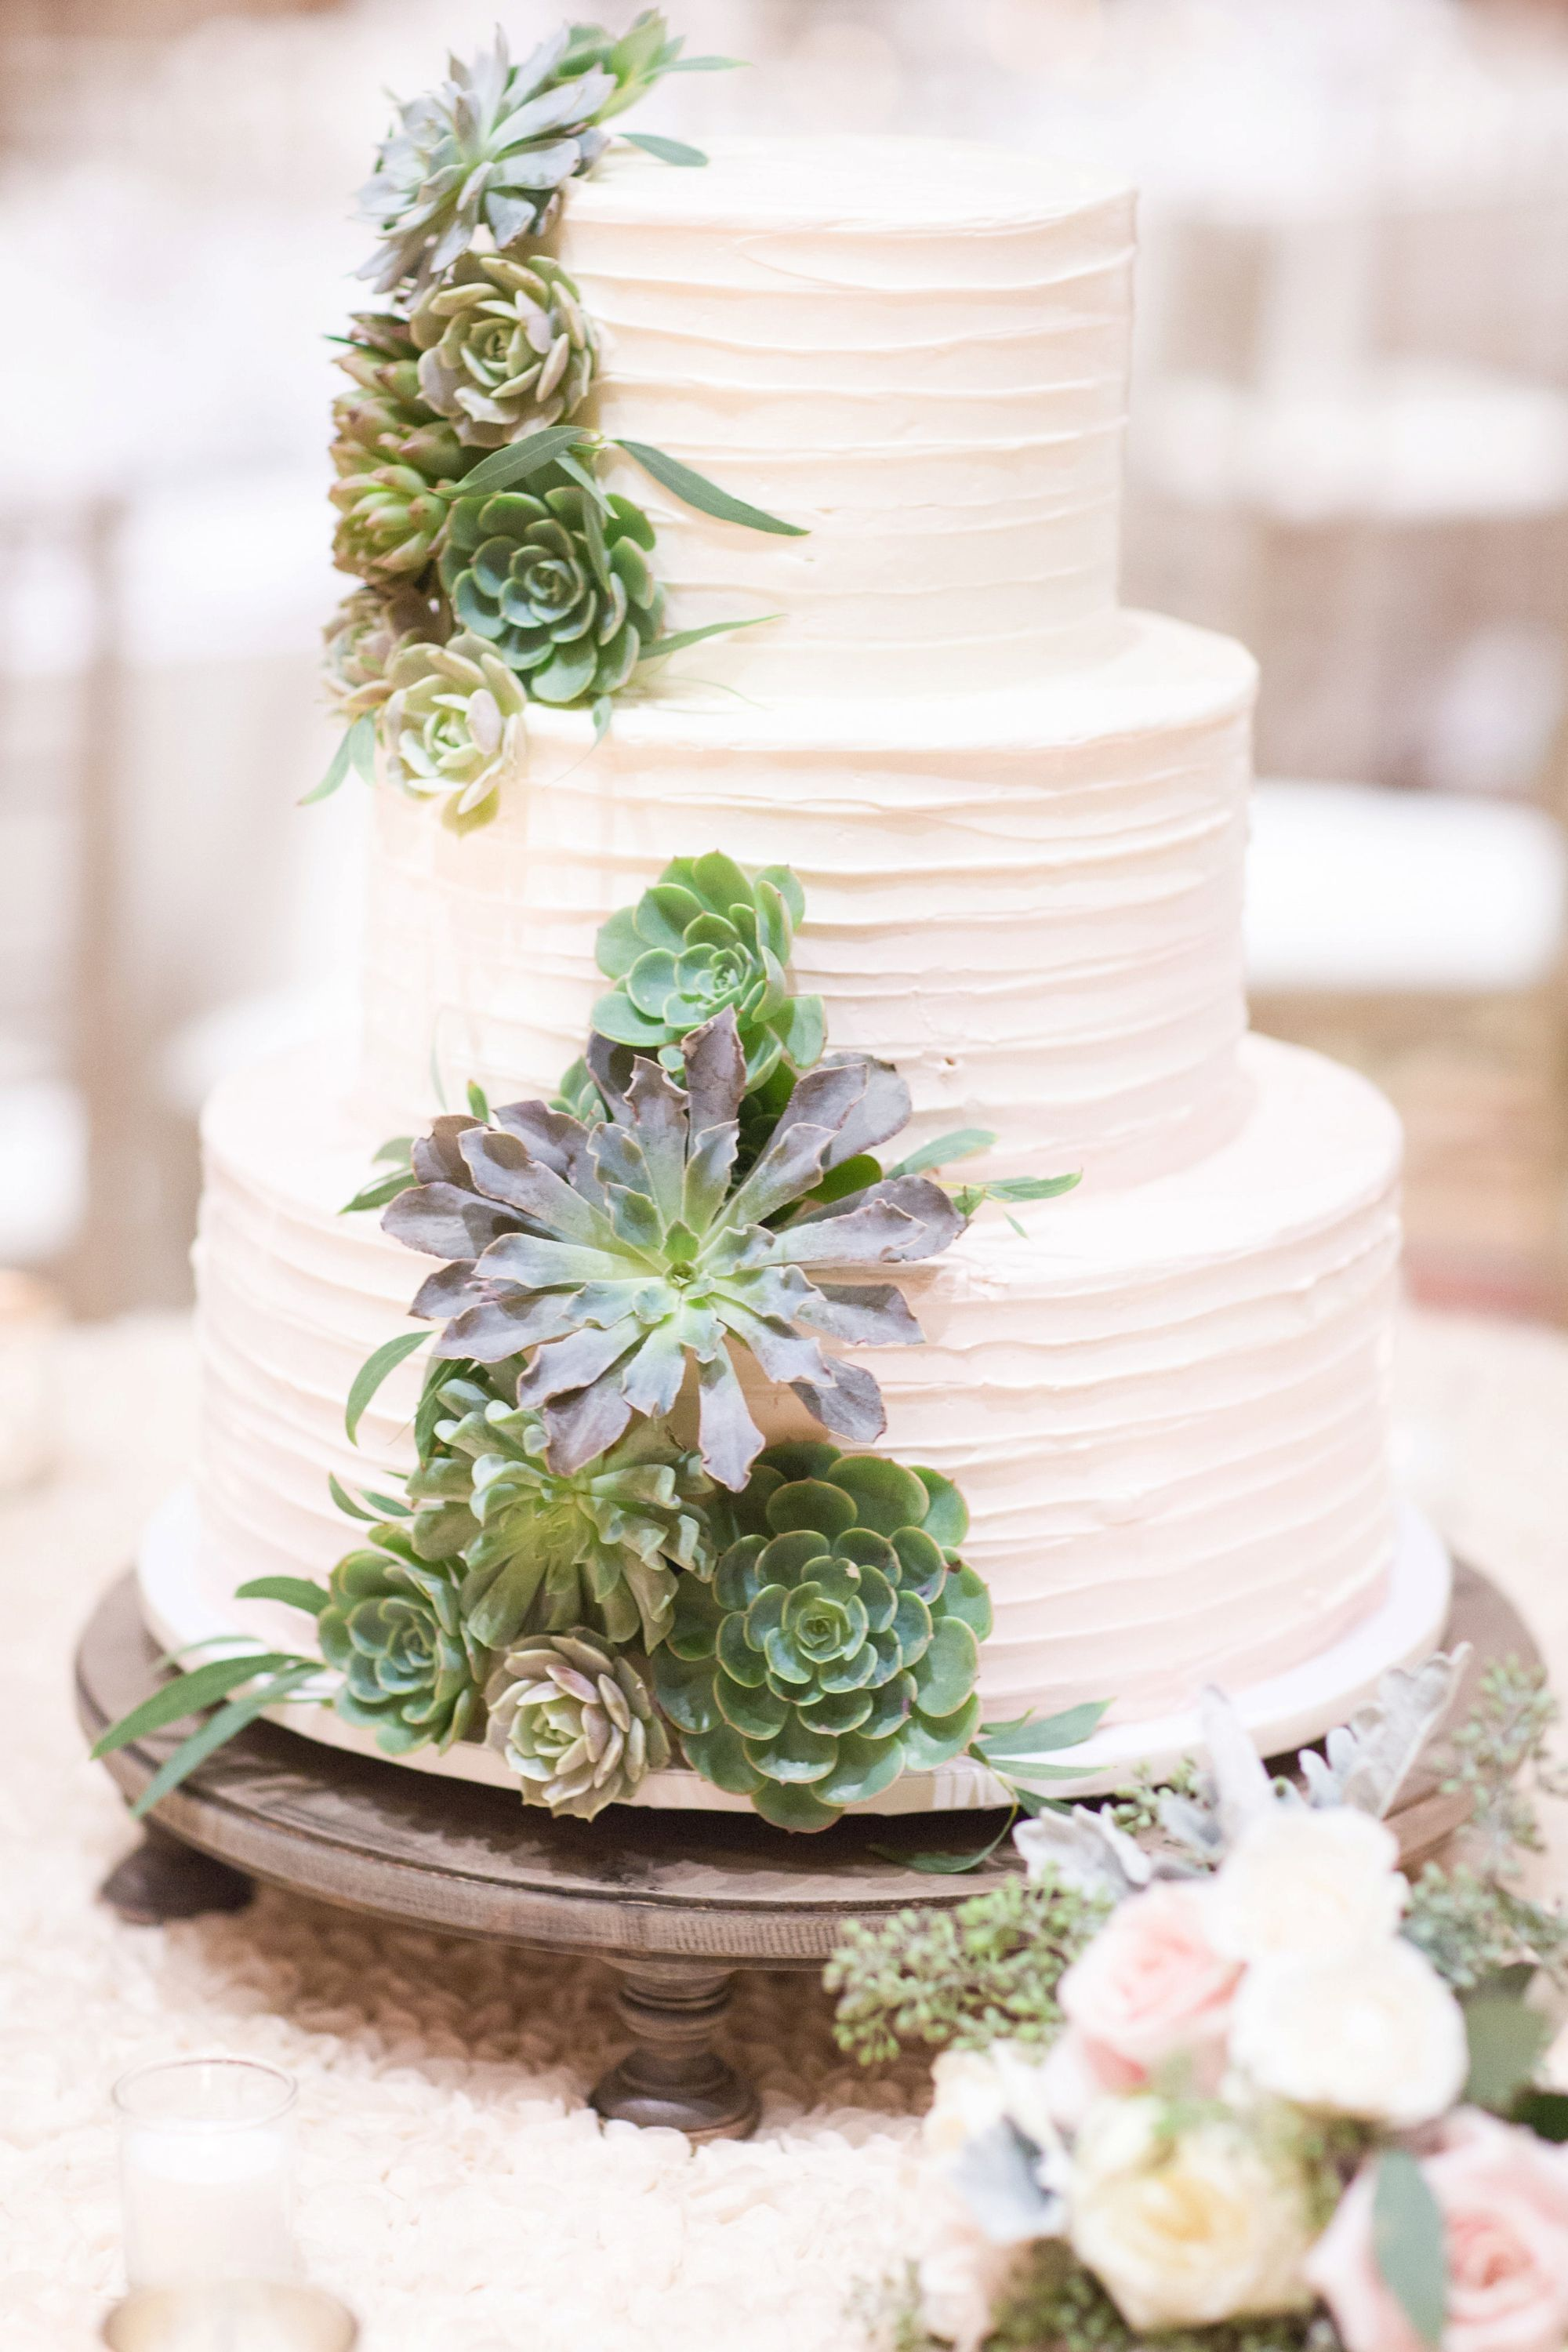 A Client Put a Filter on My Professional Photo  What Should I Do         wedding cake with greenery and succulents  Here s what a photographer  should say when a client puts an Instagram filter on one of